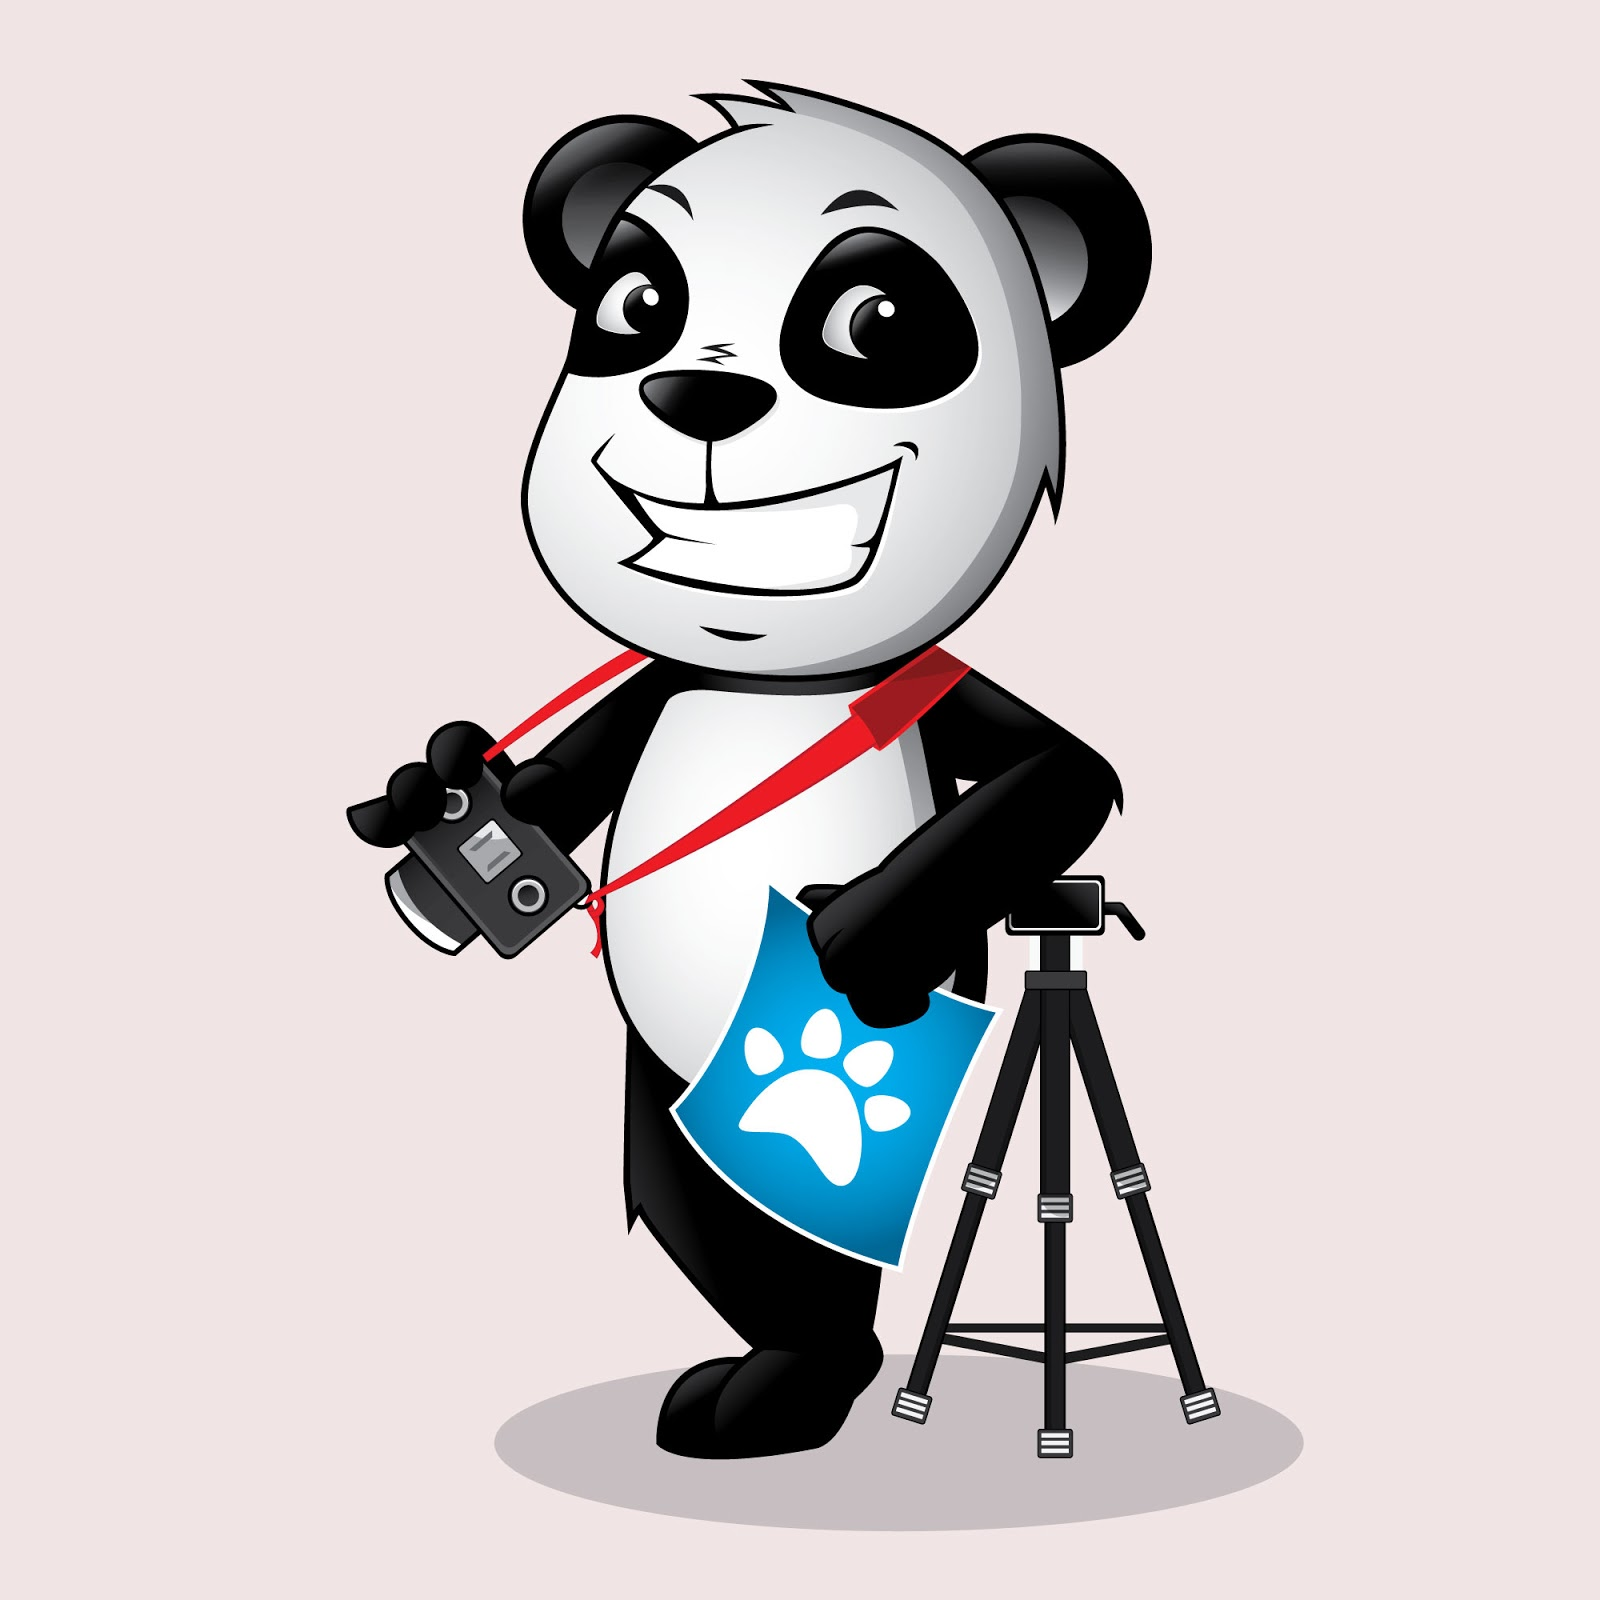 Panda Photographer Mascot Logo Free Download Vector CDR, AI, EPS and PNG Formats